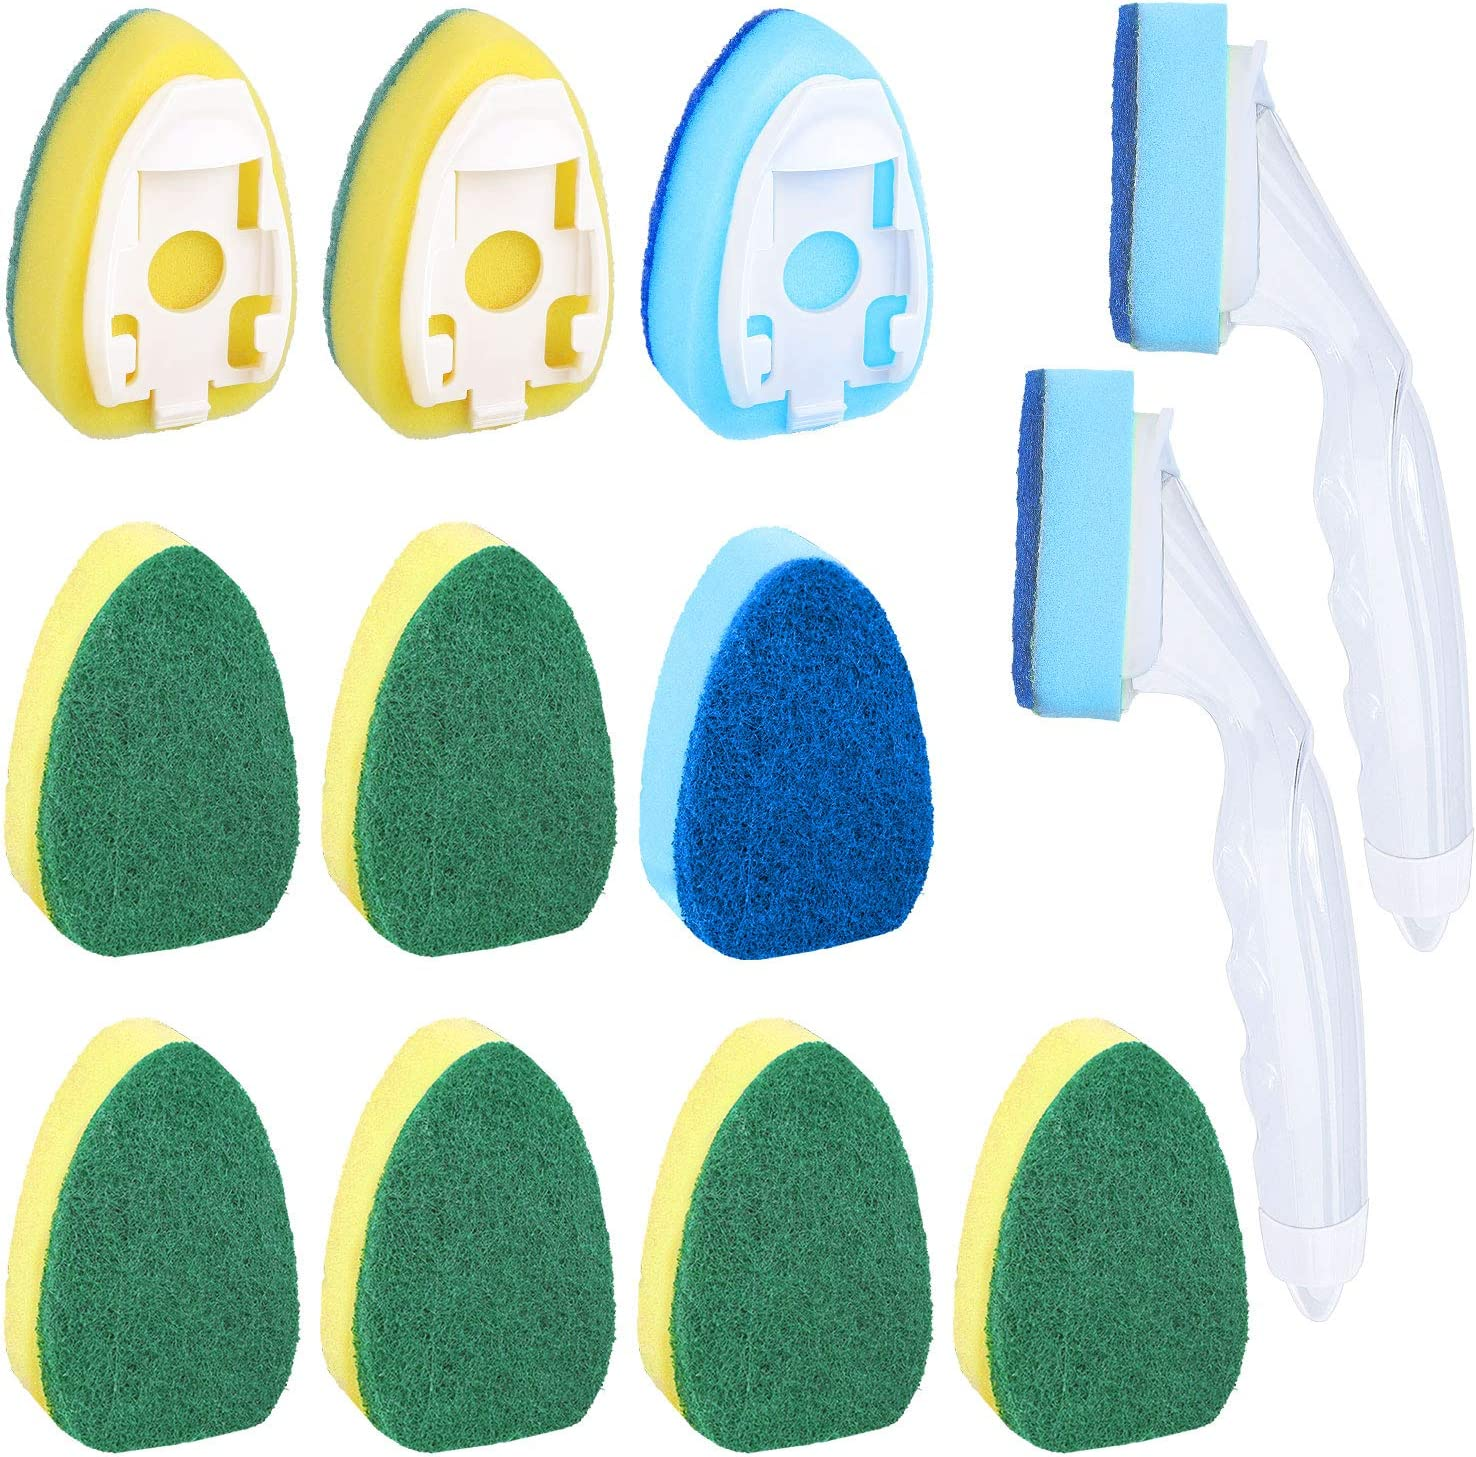 14 Pieces Dish Wand Sponge Set, 2 Pieces Soap Control Dish Wand Refillable Dish Washing Handles 12 Pieces Replacement Head Sponge Non-Scratch Cleaning Sponge for Kitchen Sink Dish Cleaning